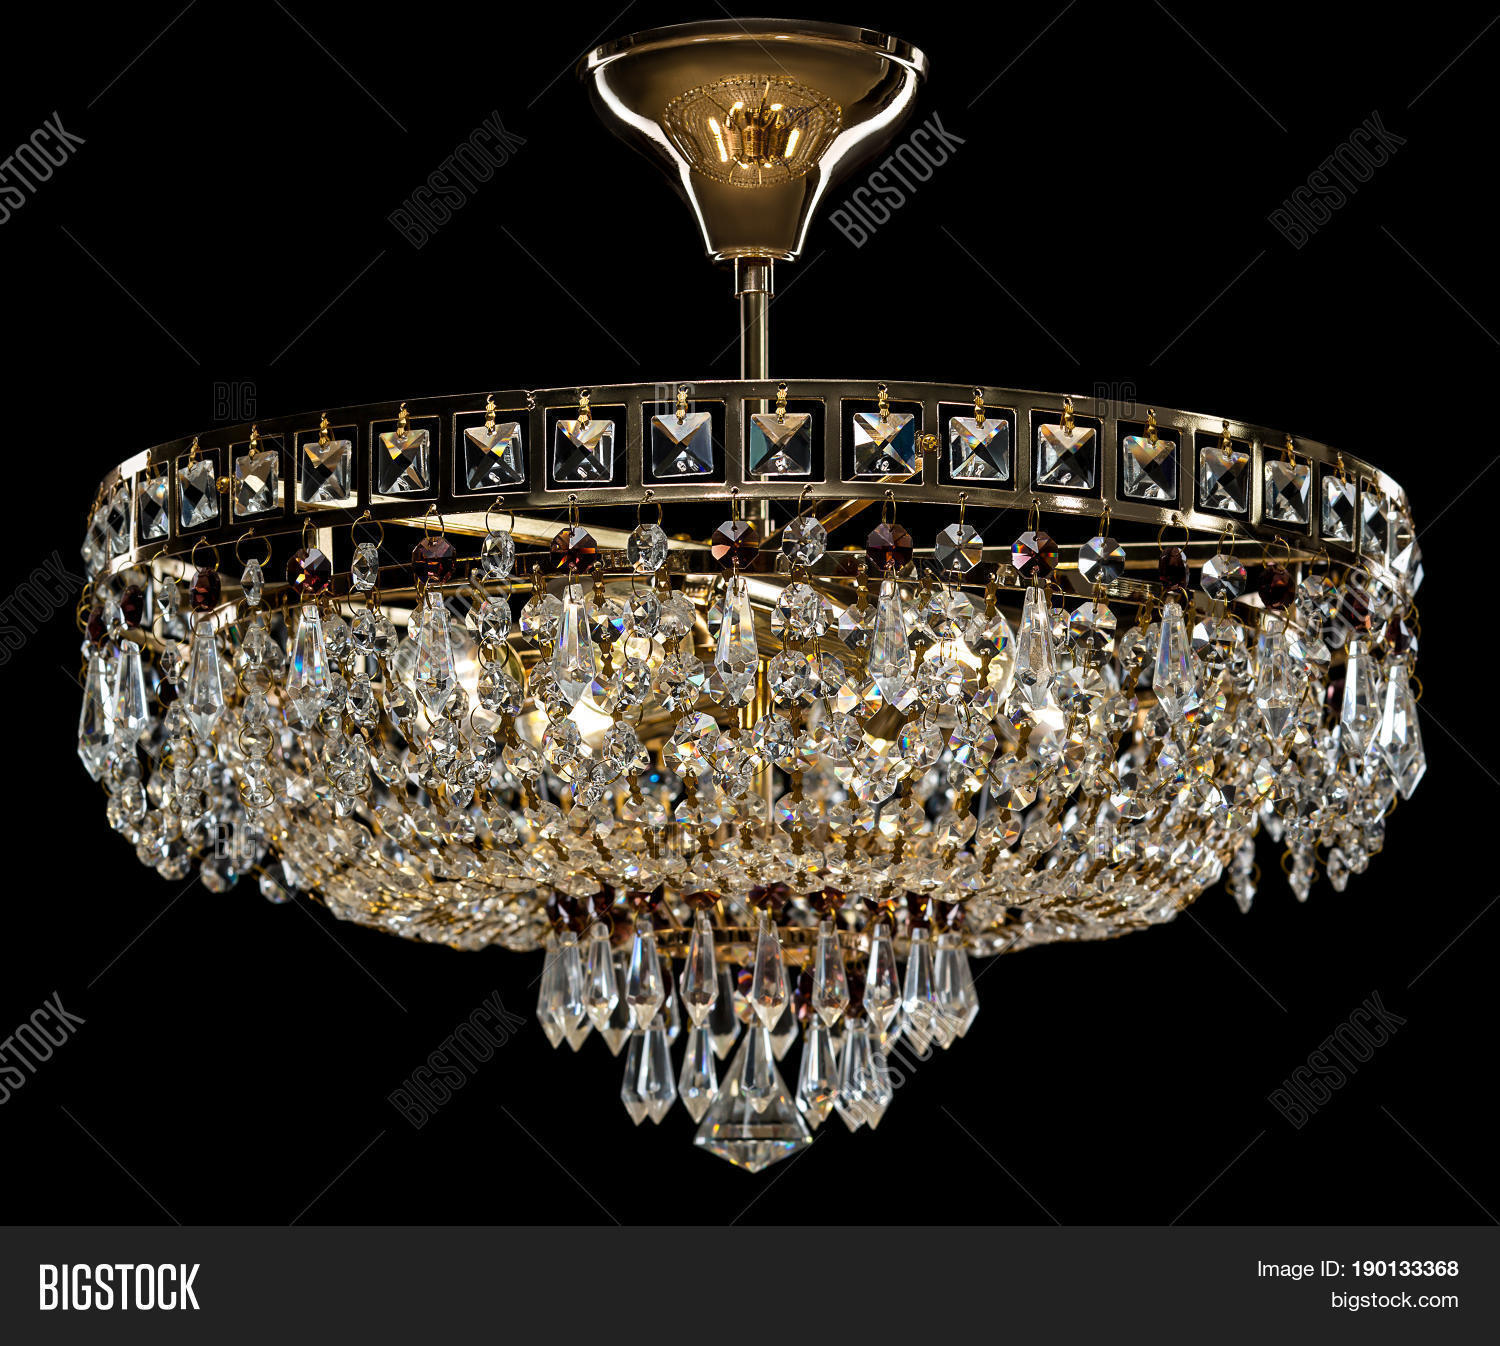 of over queen furniture attachment crystal previous victoria extra photos for recently intended tiers large royal showing chandeliers uk lights released lighting chandelier photo most ceiling size